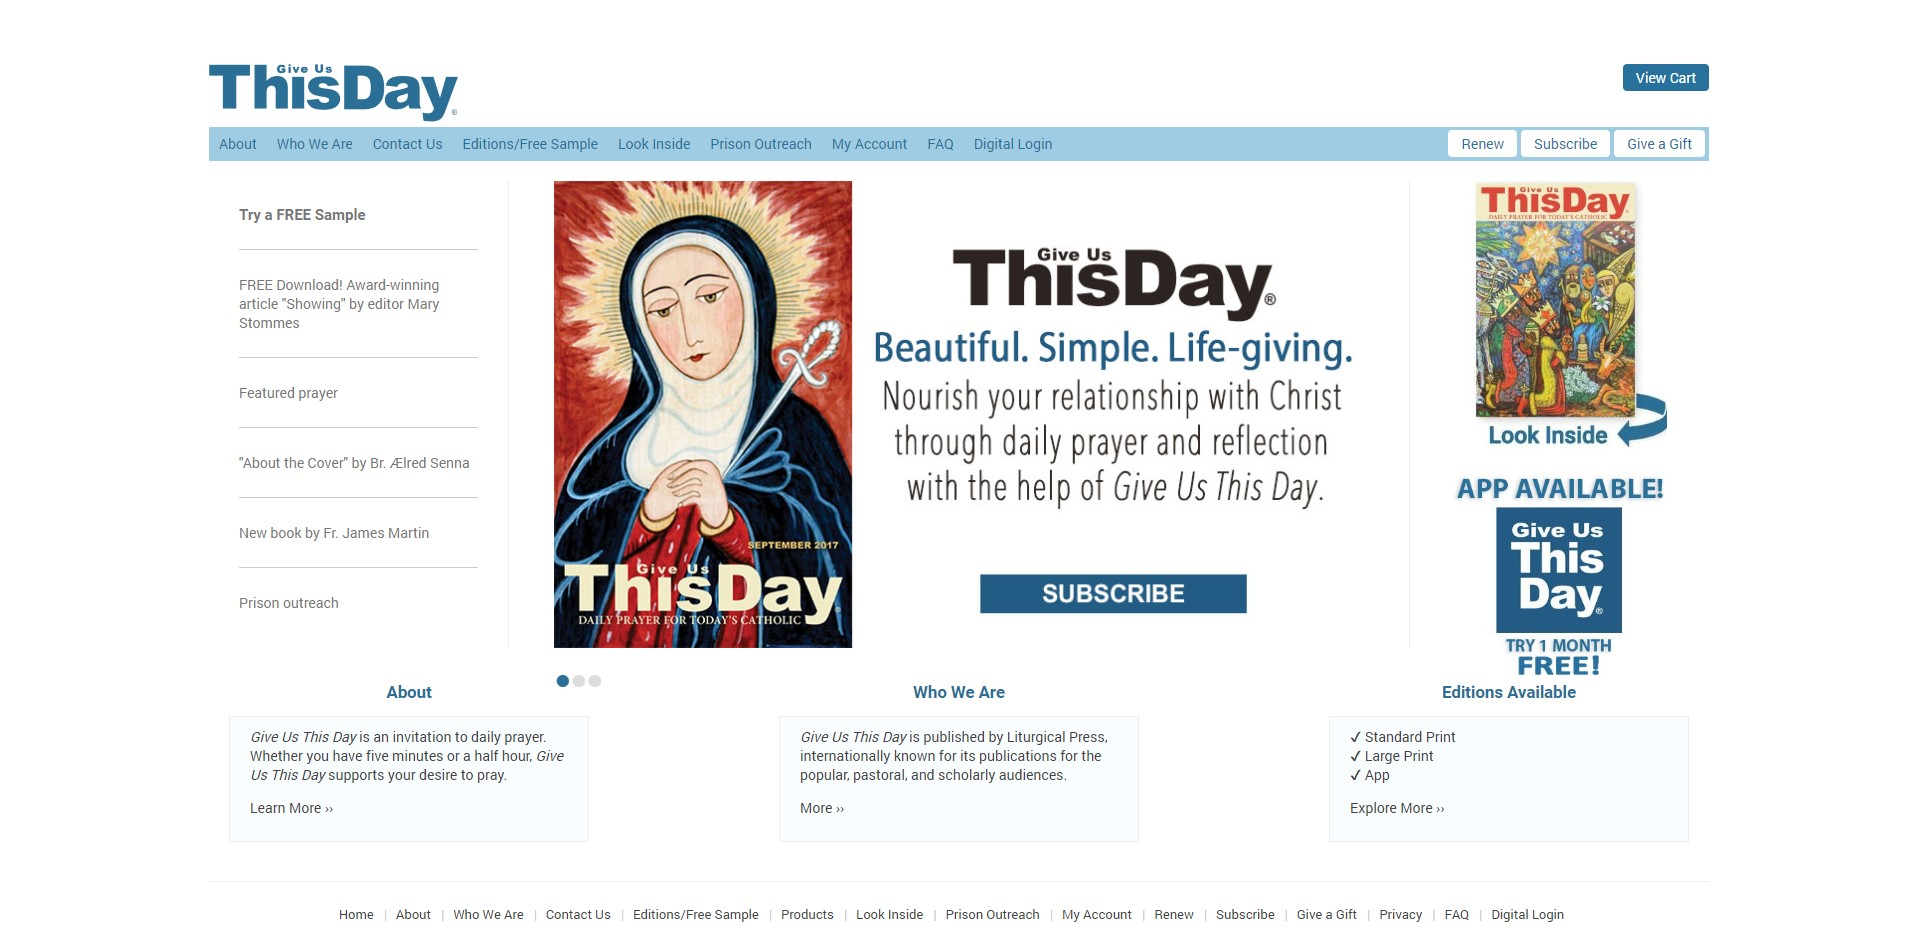 Old Give Us This Day Website Homepage